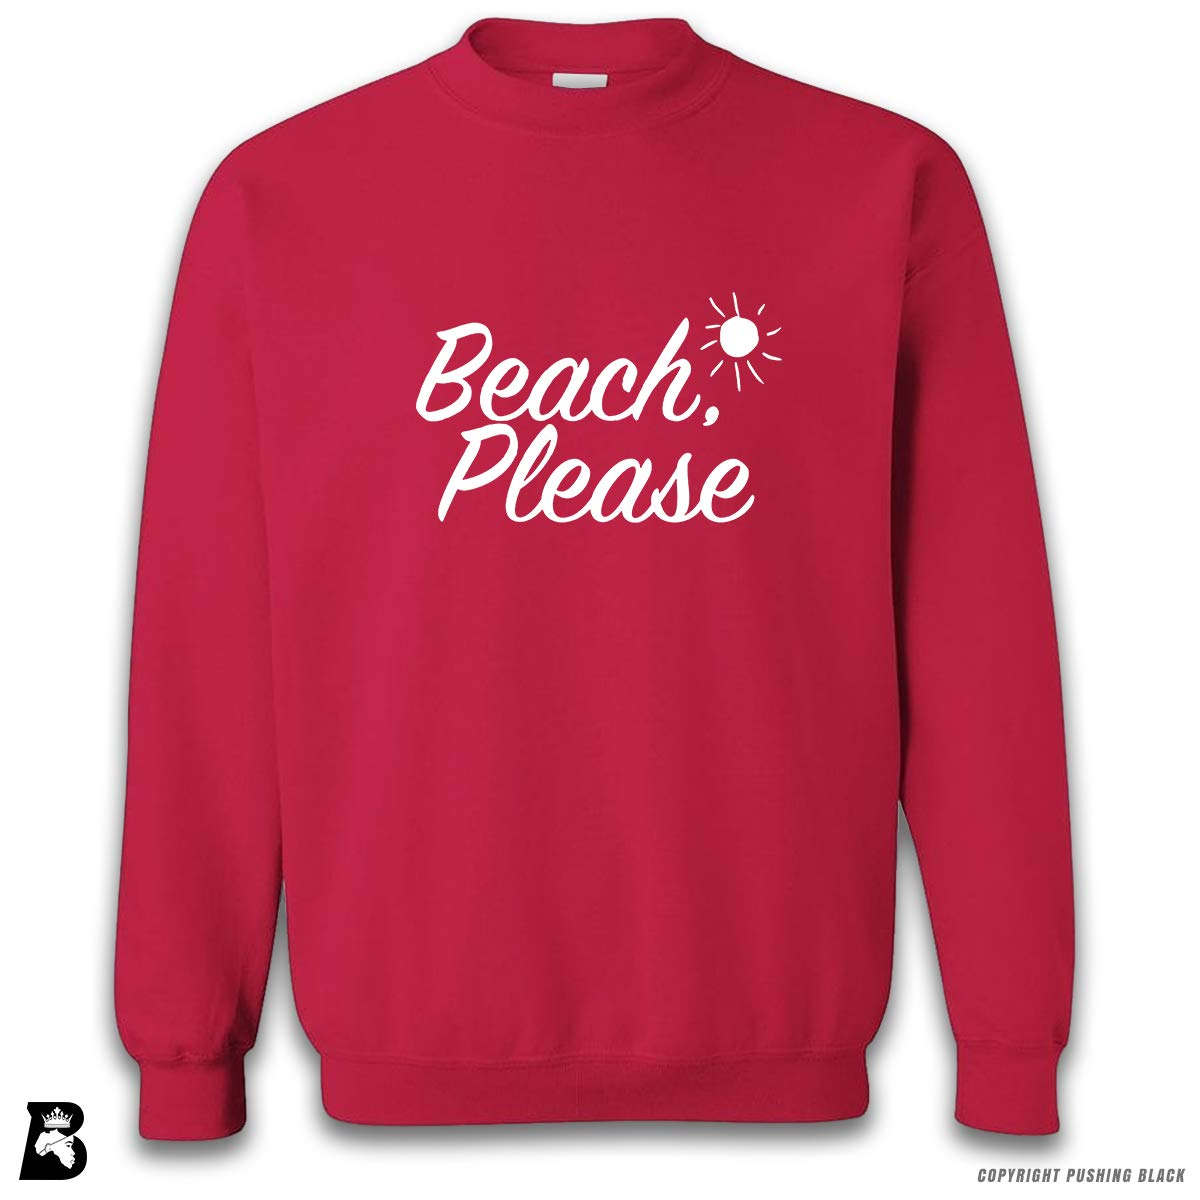 Beach Please Premium Unisex Sweatshirt